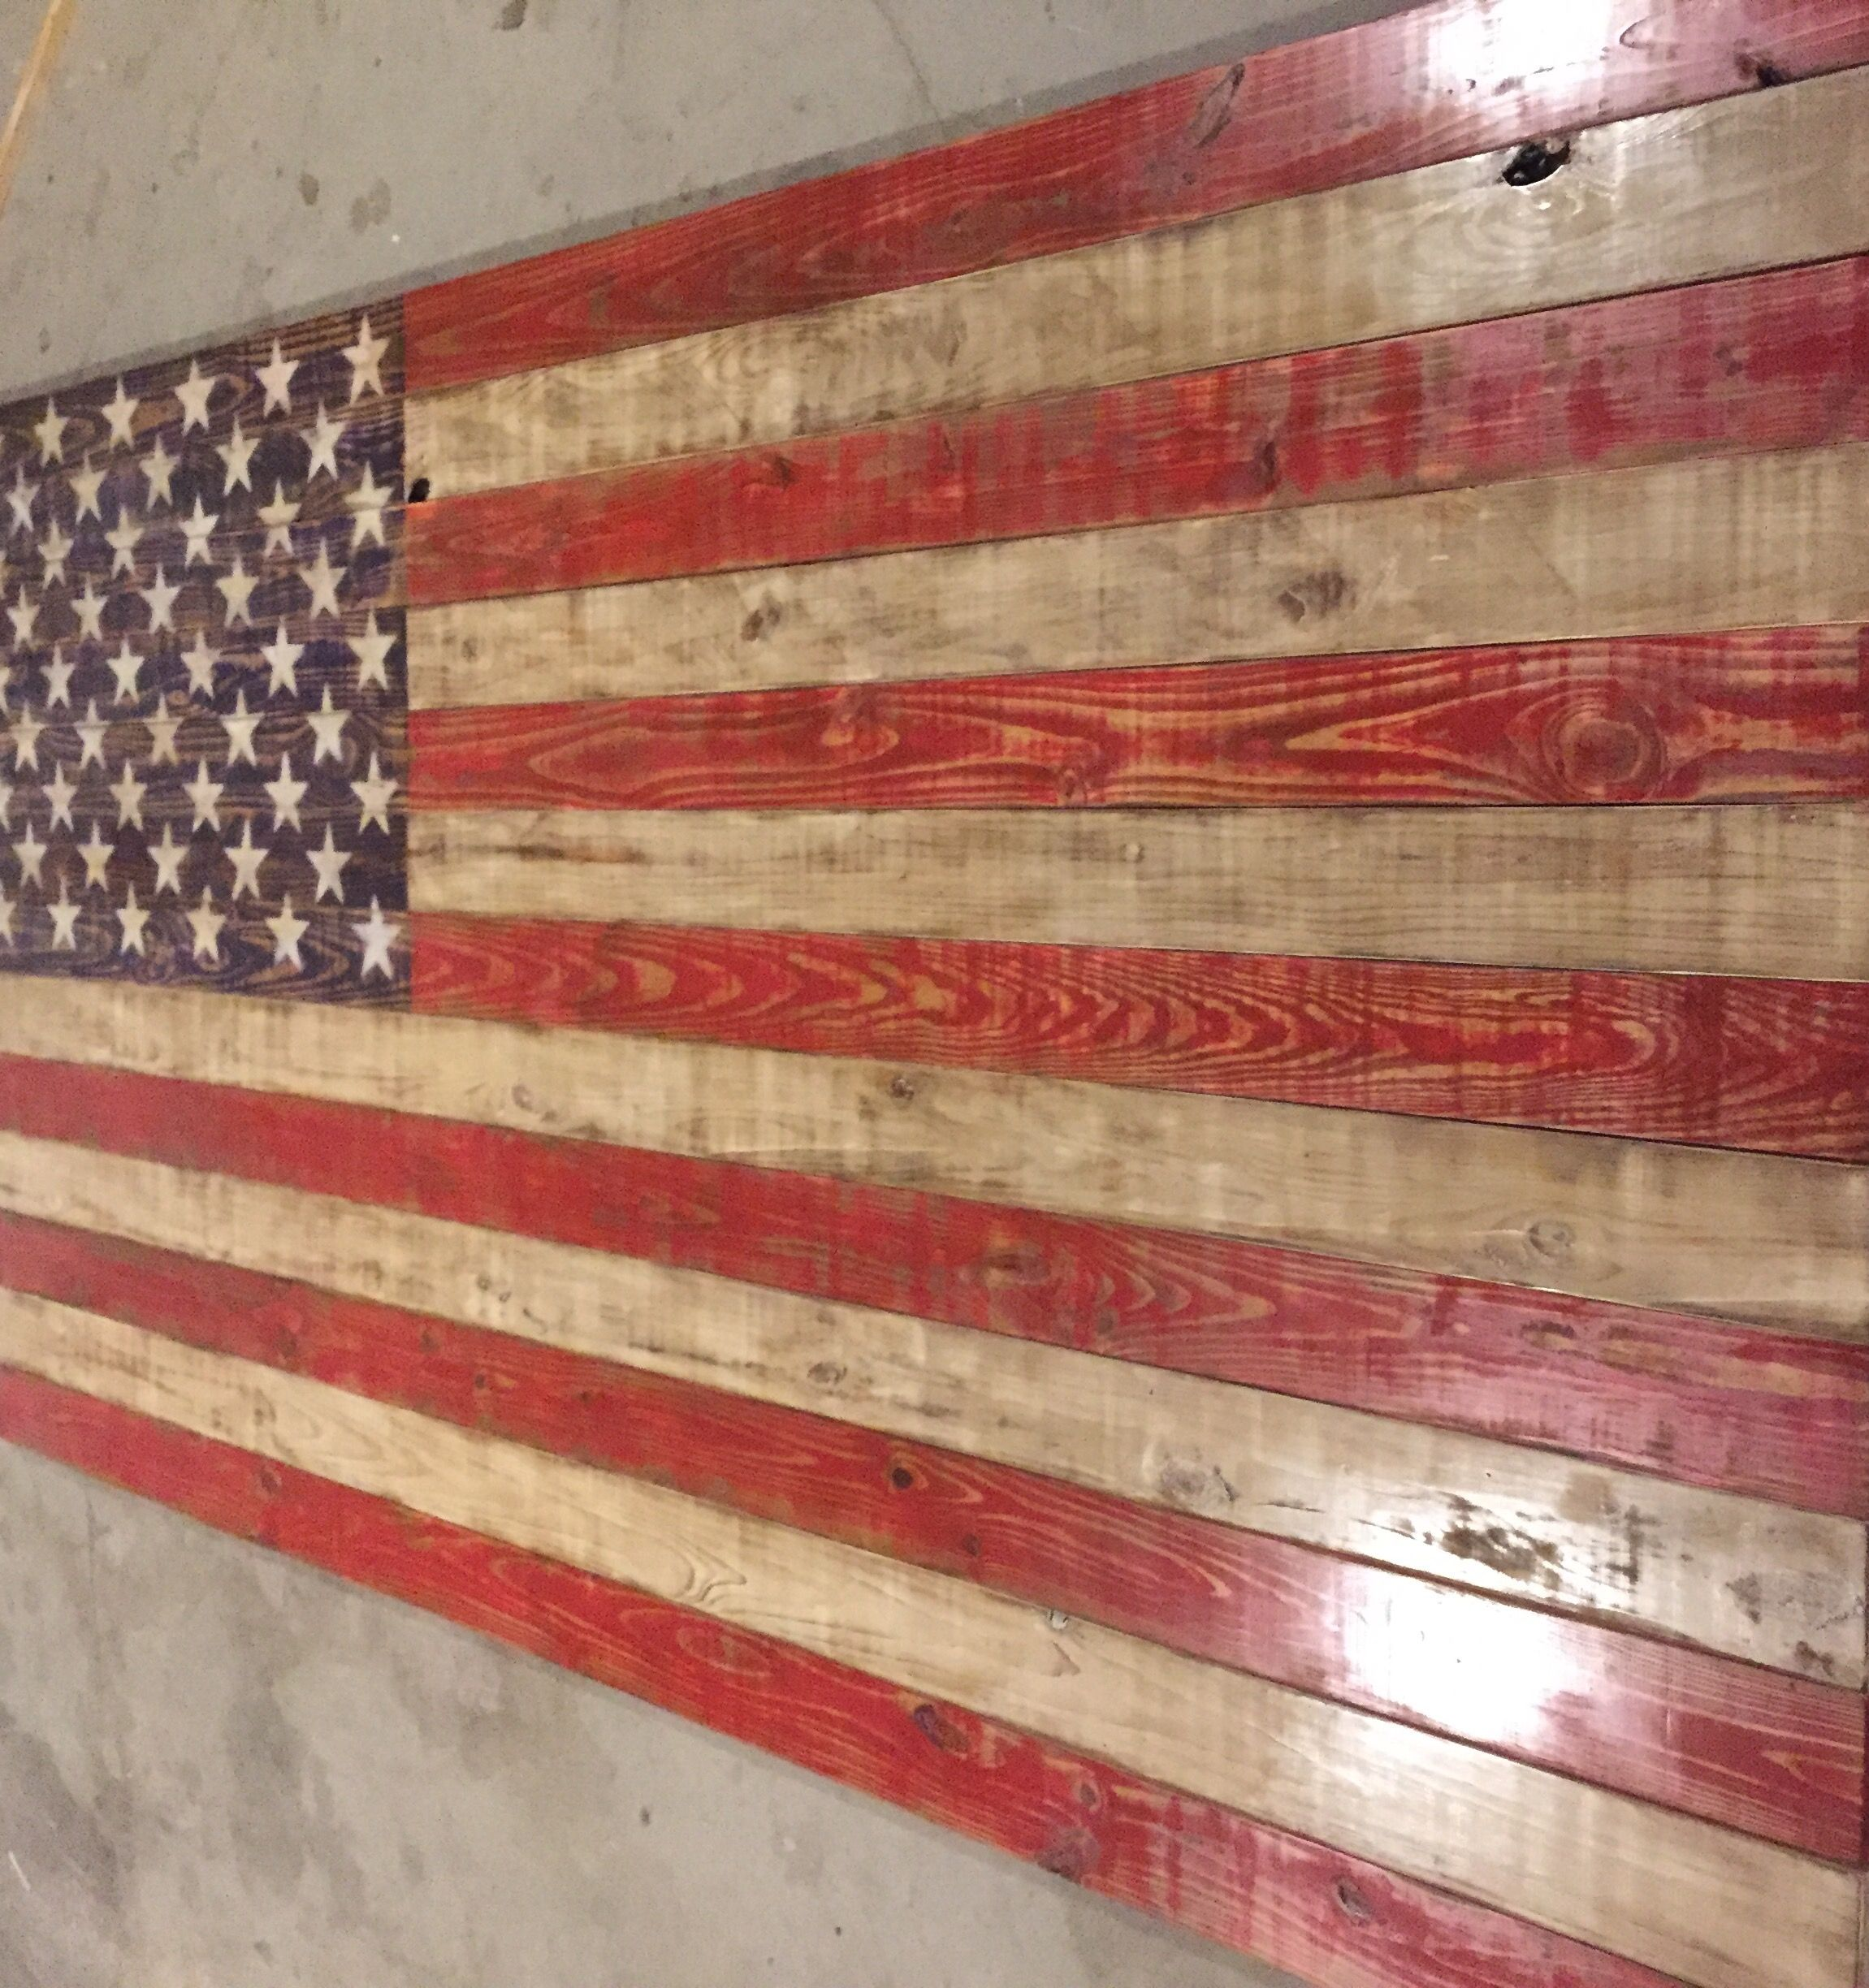 Extra Large American Flag Approximately 5 Tall x 9 Wide Painted